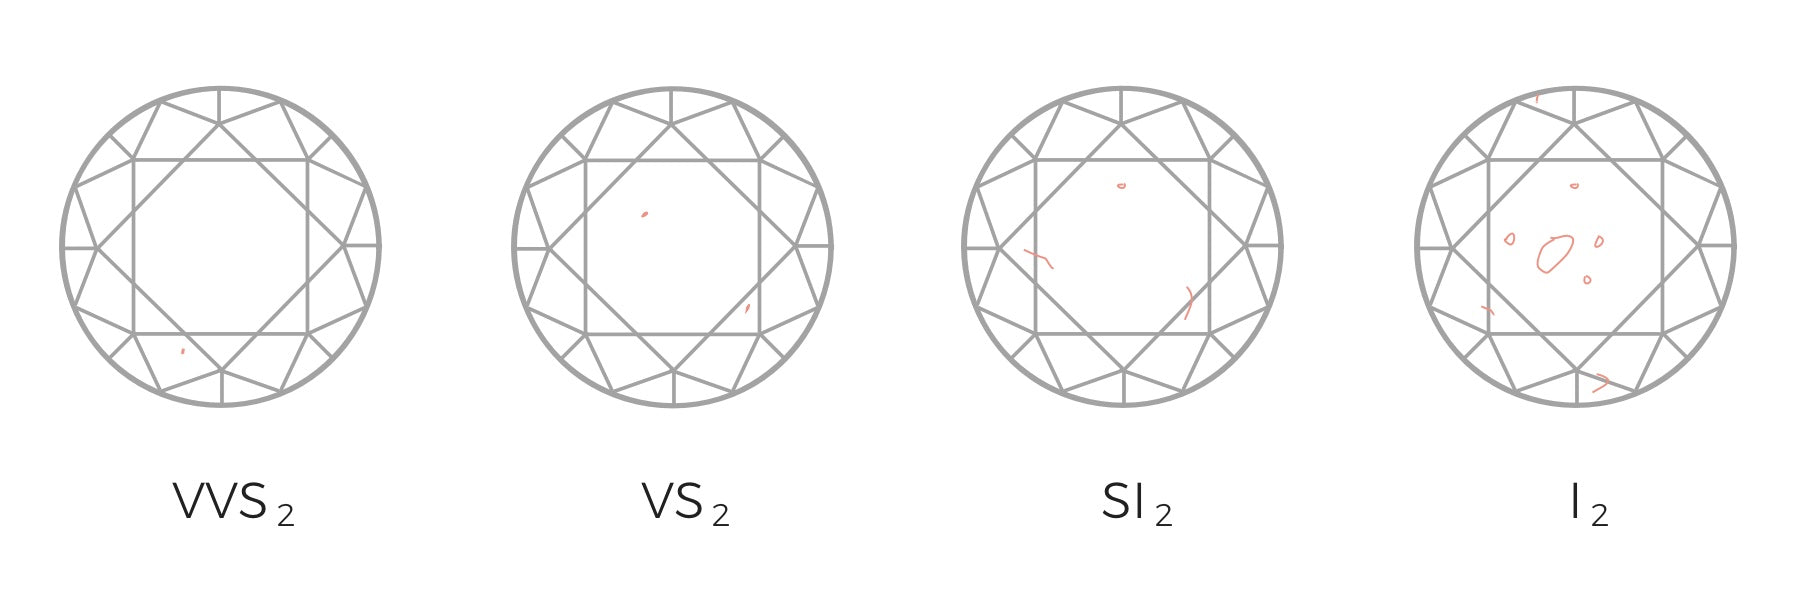 Diamond Clarity Diagrams